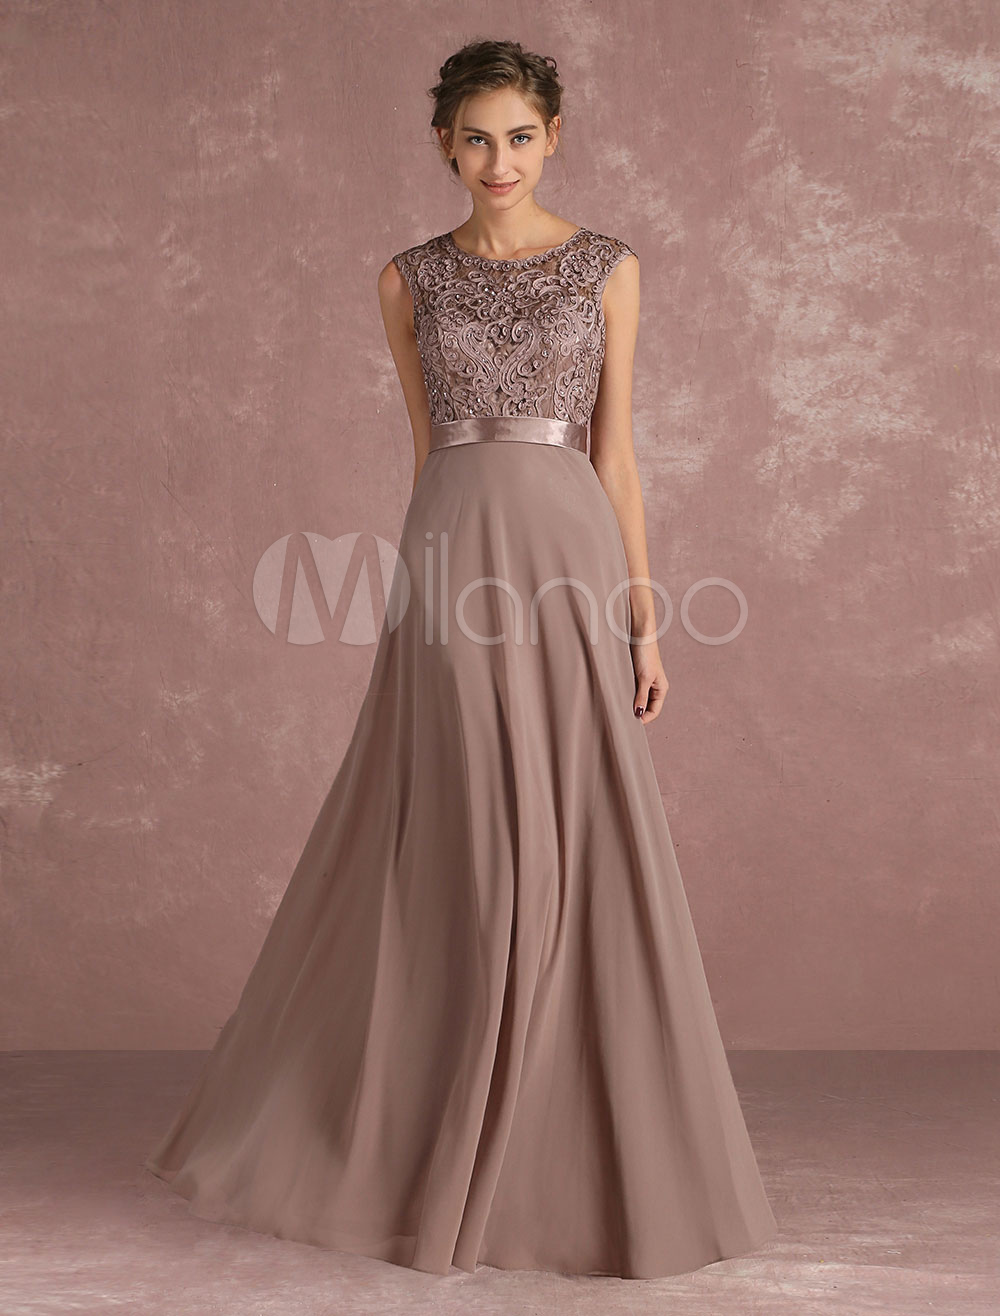 Buy Chiffon Mother's Dress Lace Beading Formal Evening Dress Sleeveless Taupe Sash Floor Length Wedding Guest Dresses for $161.49 in Milanoo store